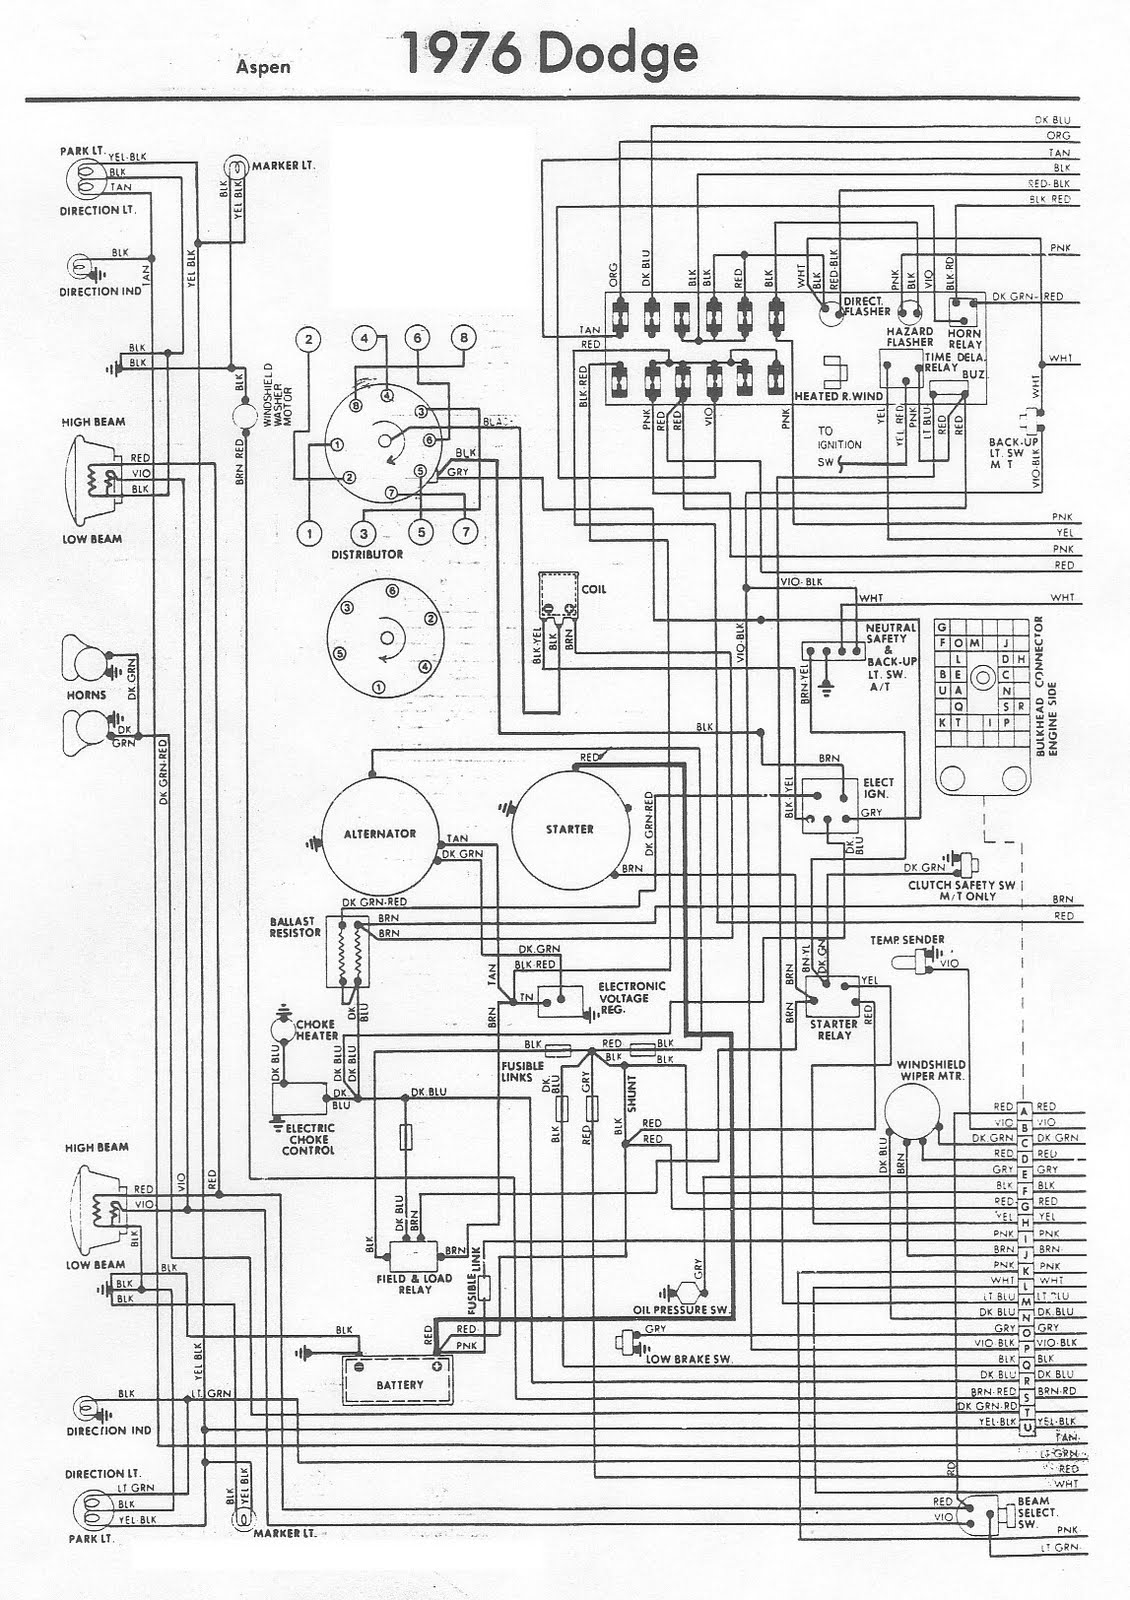 similiar dodge ignition switch wiring diagram keywords wiring diagram of 1976 dodge aspen engine compartment part the dodge